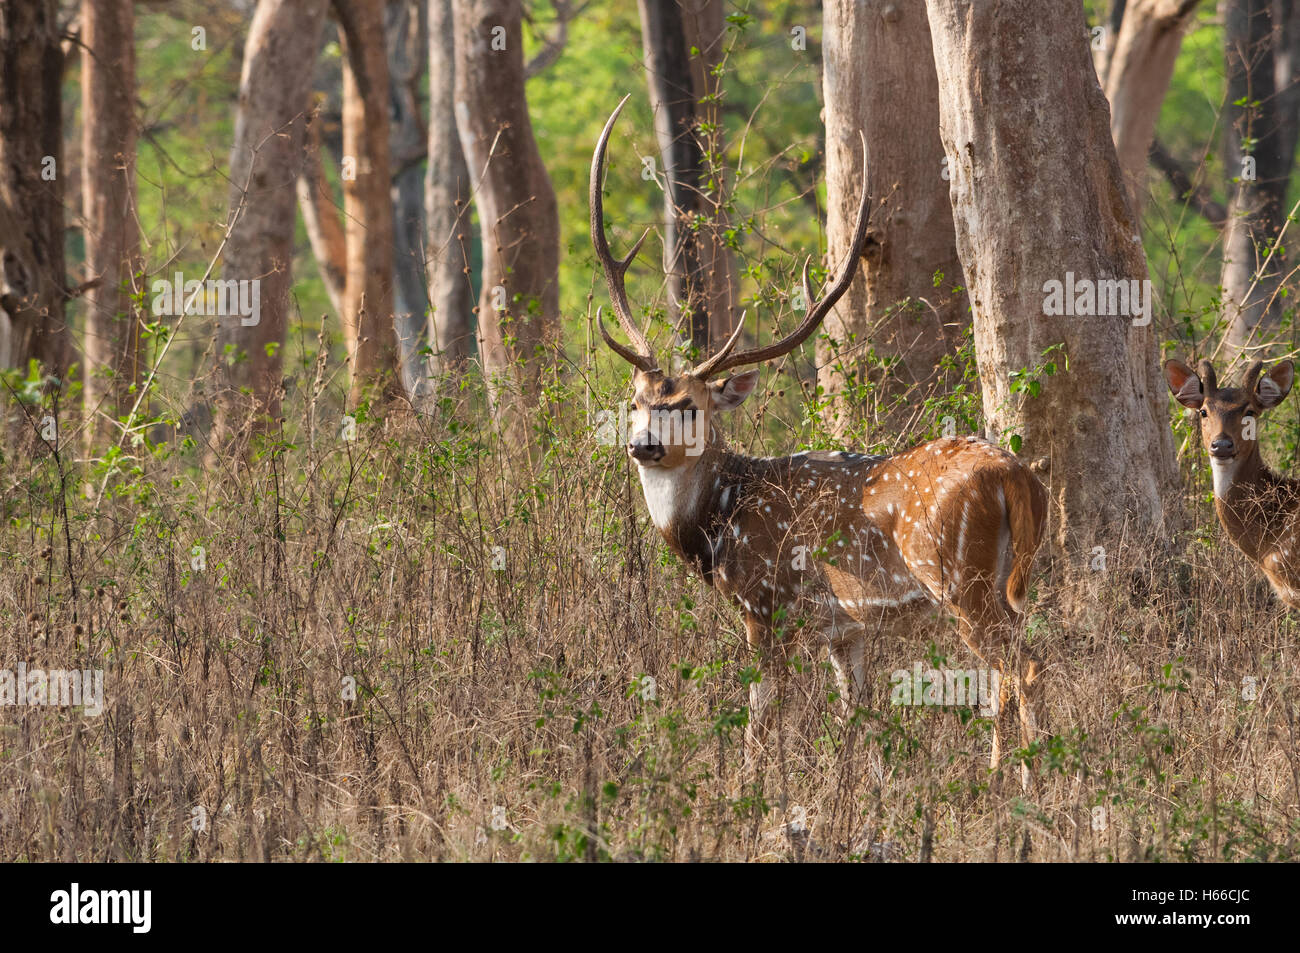 Spotted Deer (Axis axis) - Stock Image